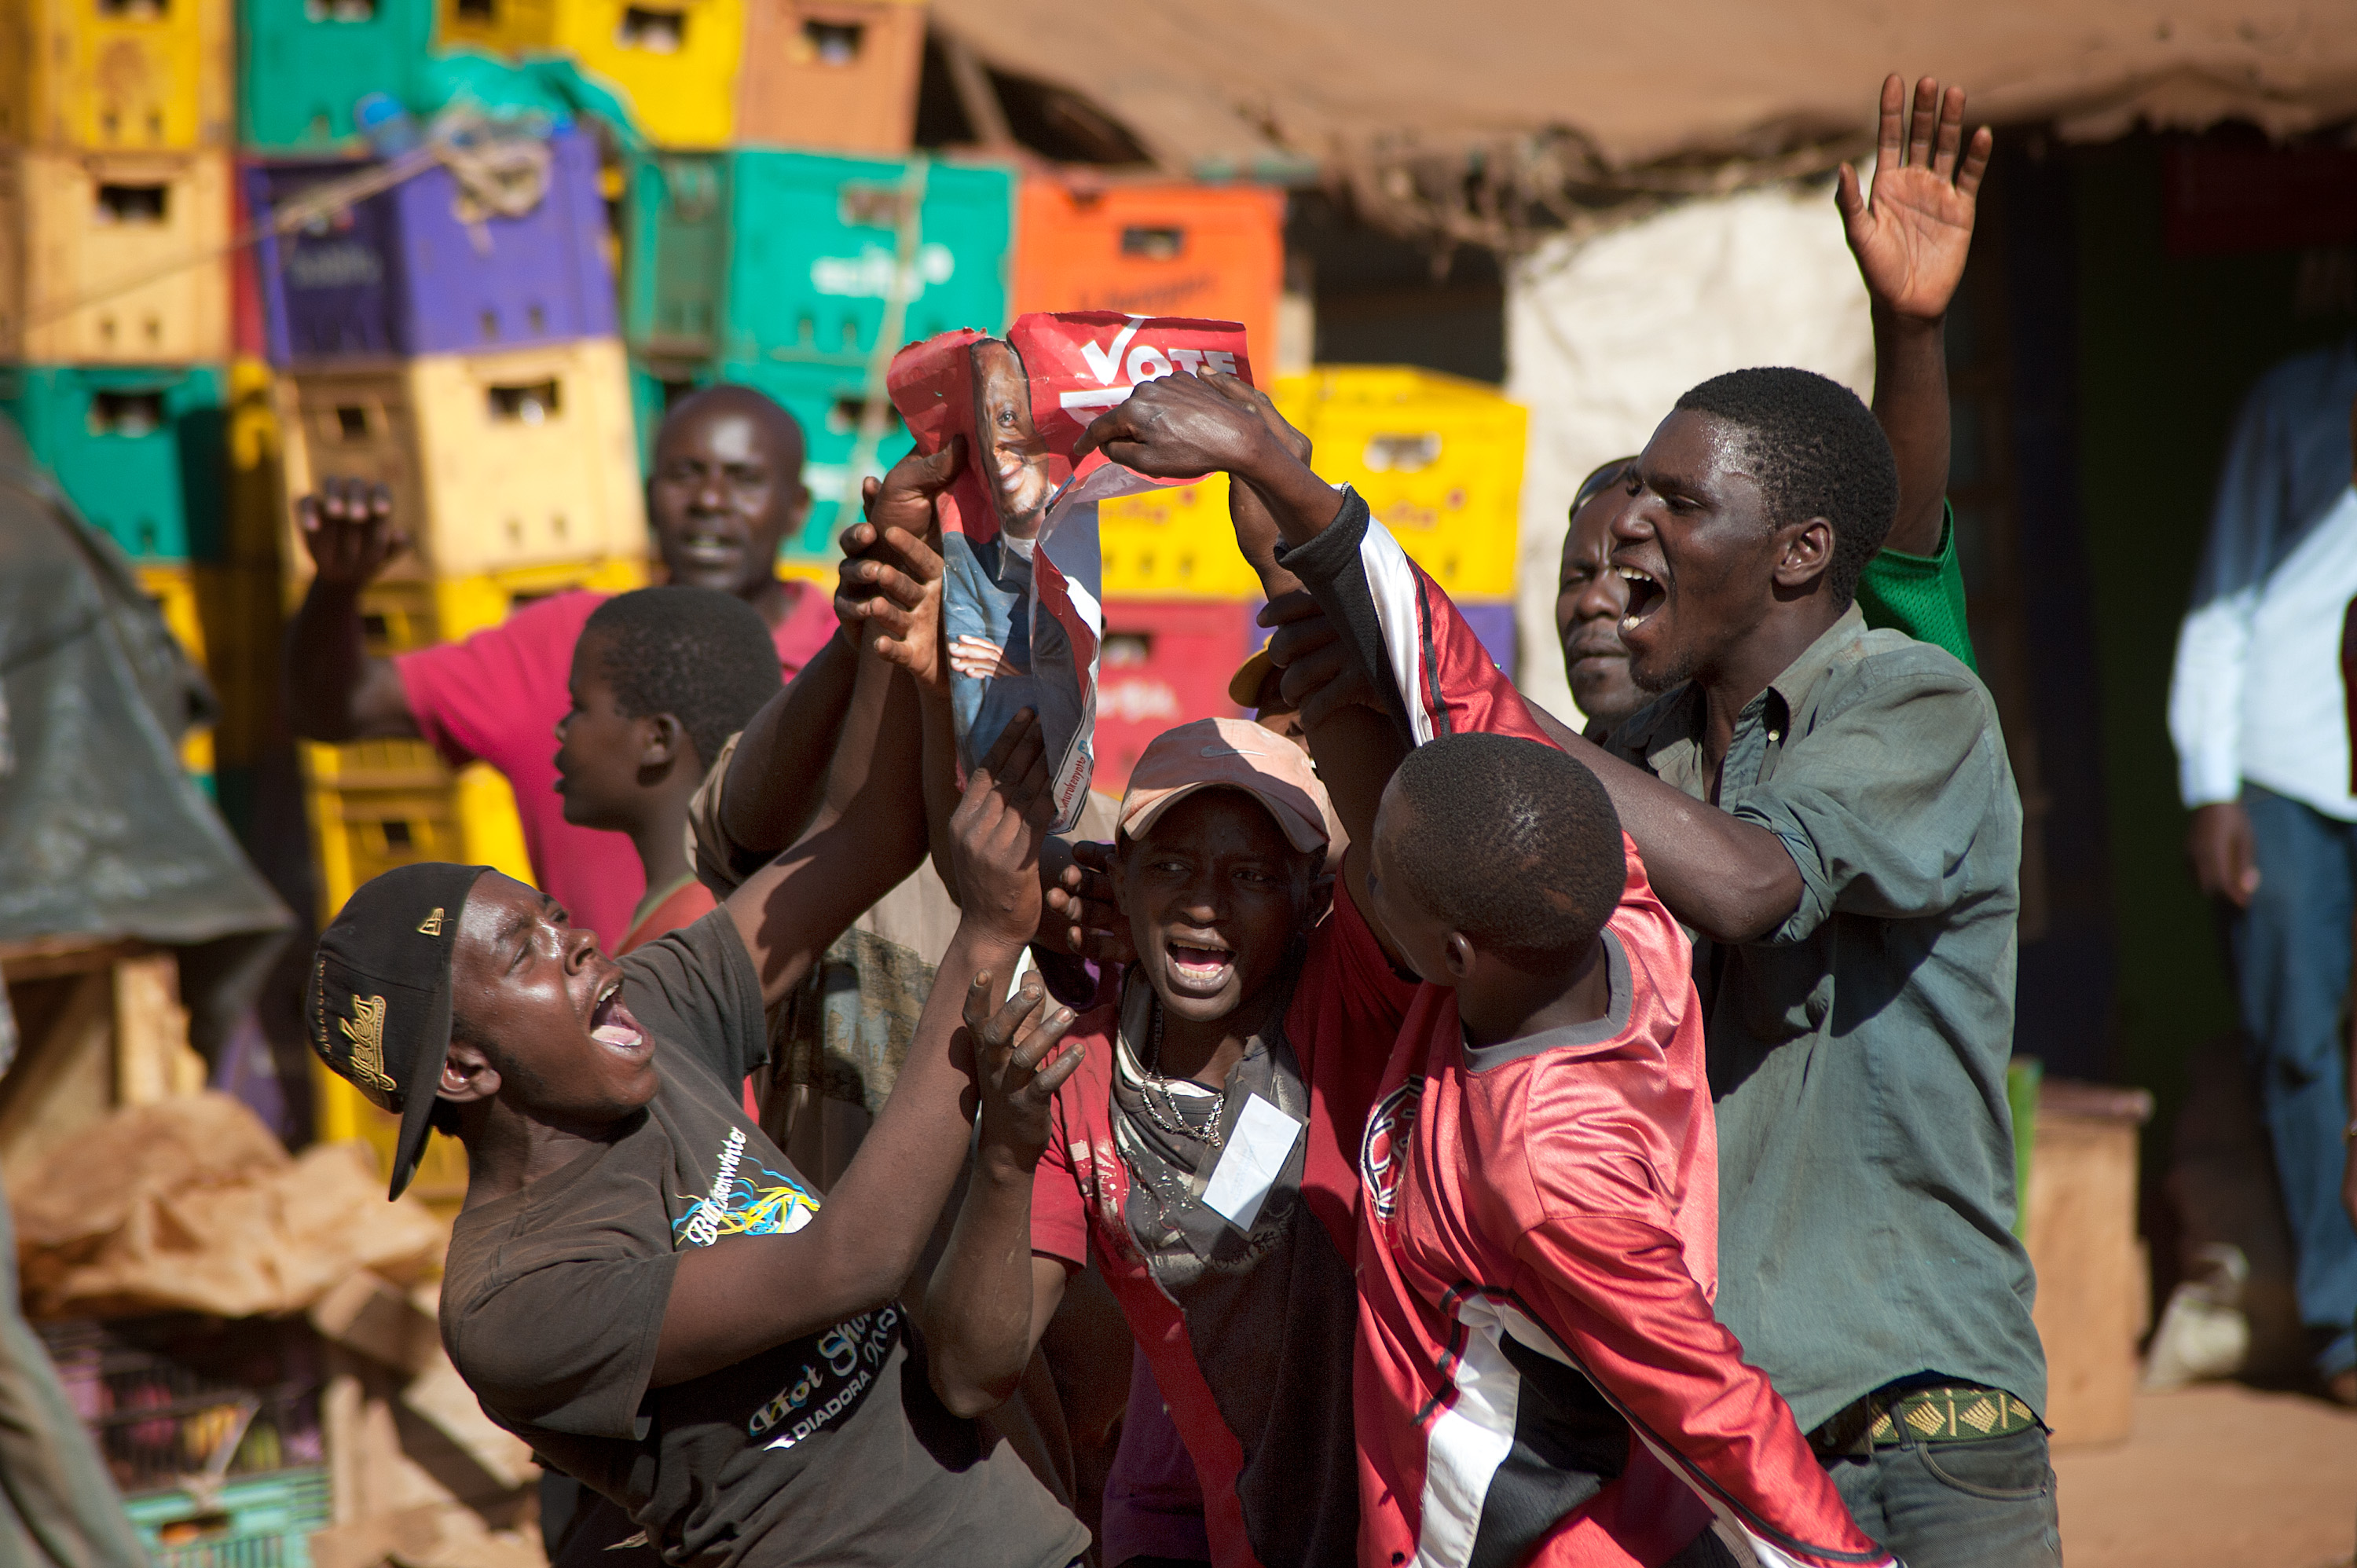 Kenyan youth exemplify 'the wretched' of Africa's electoral political processes